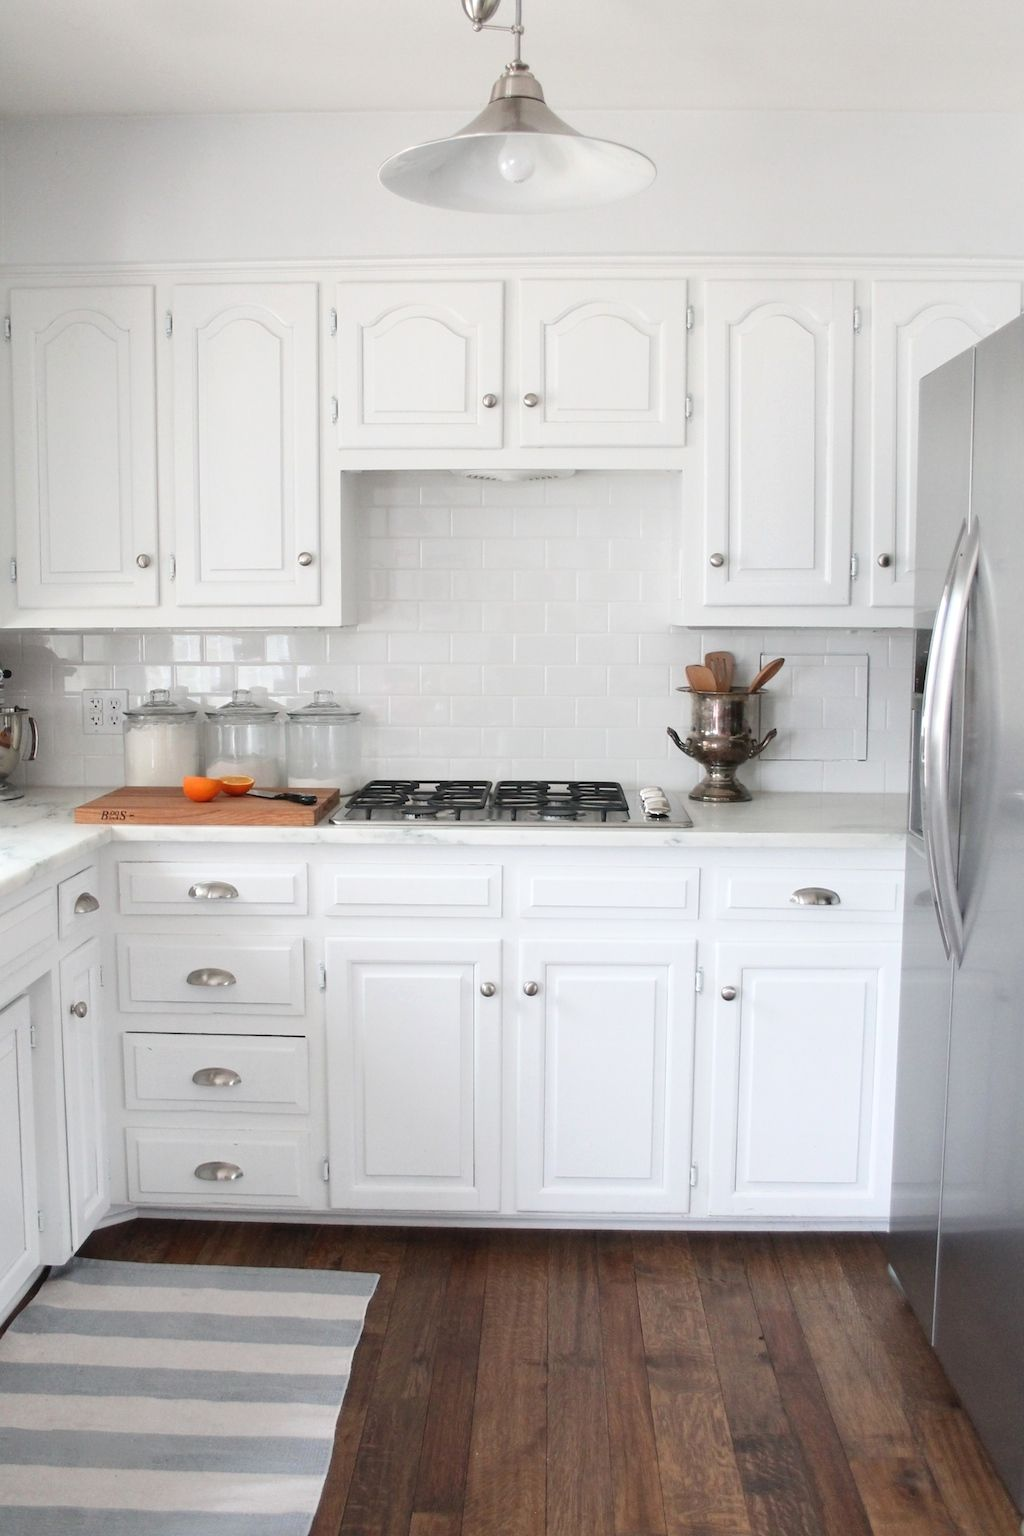 Countertop Trash Chute A Classic White Kitchen With Marble Countertops And White